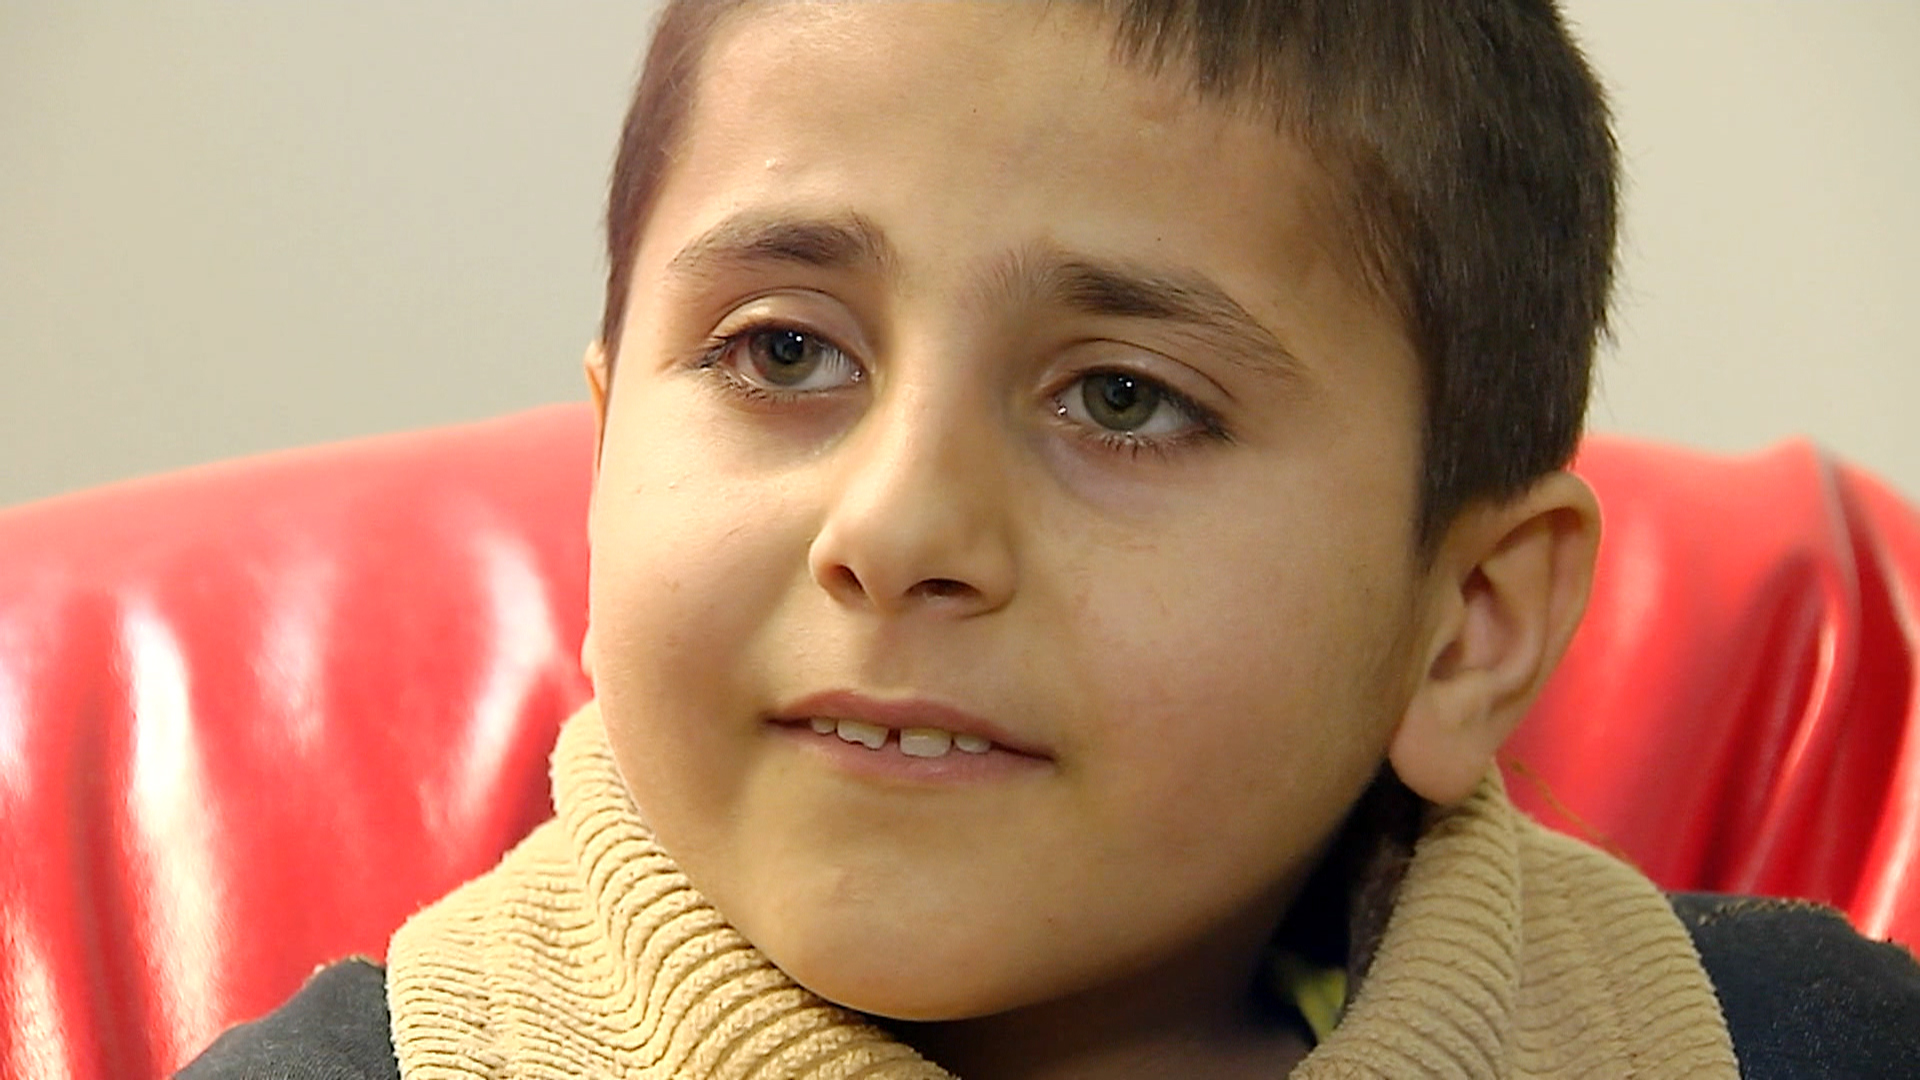 Syria's Children Suffering, Dying Three Years Into Conflict